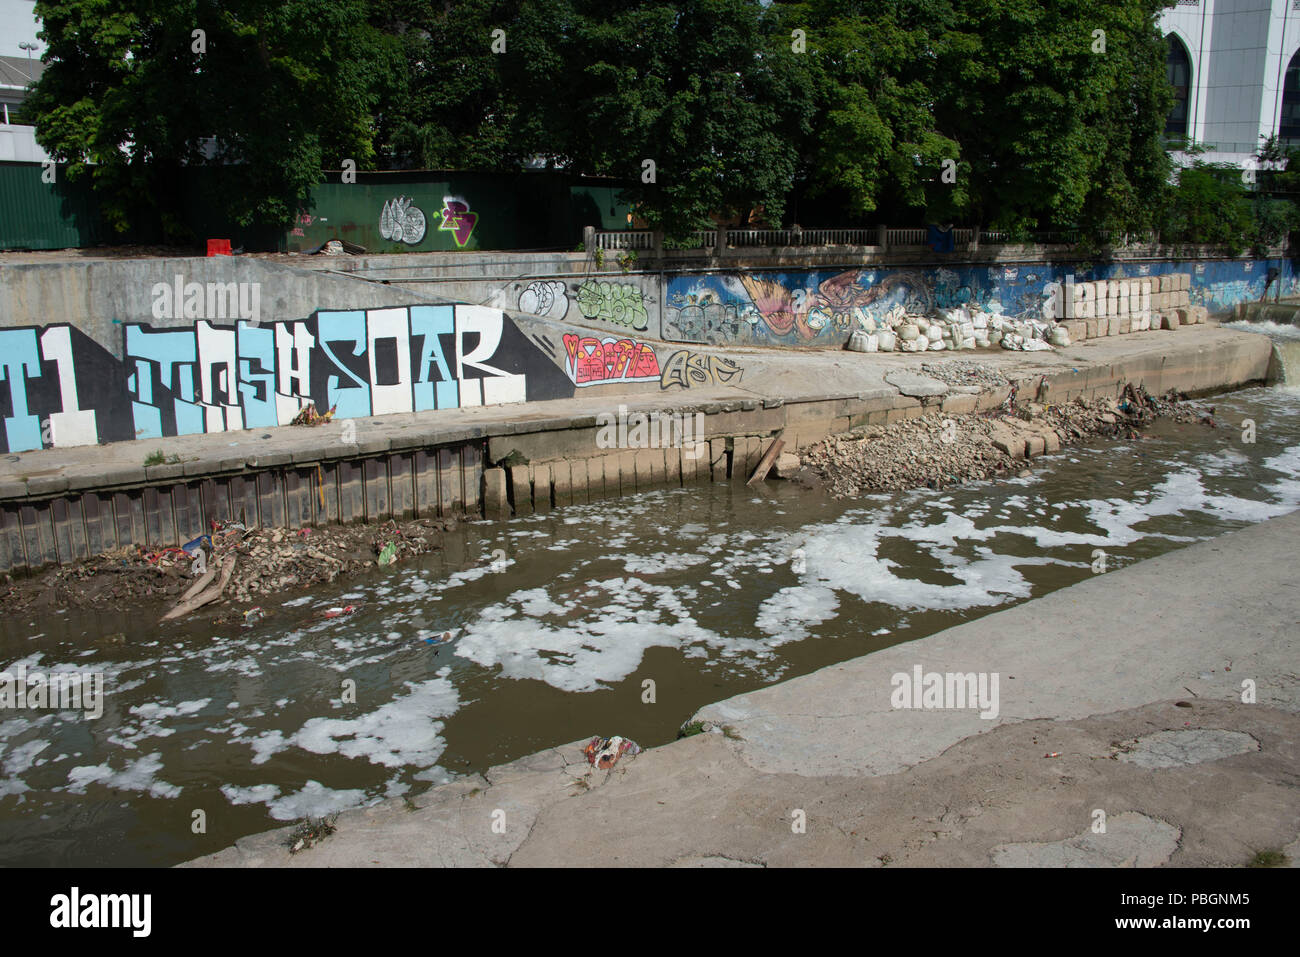 Garbage, pollution and graffiti along the Gombak River in downtown Kuala Lumpur - Stock Image